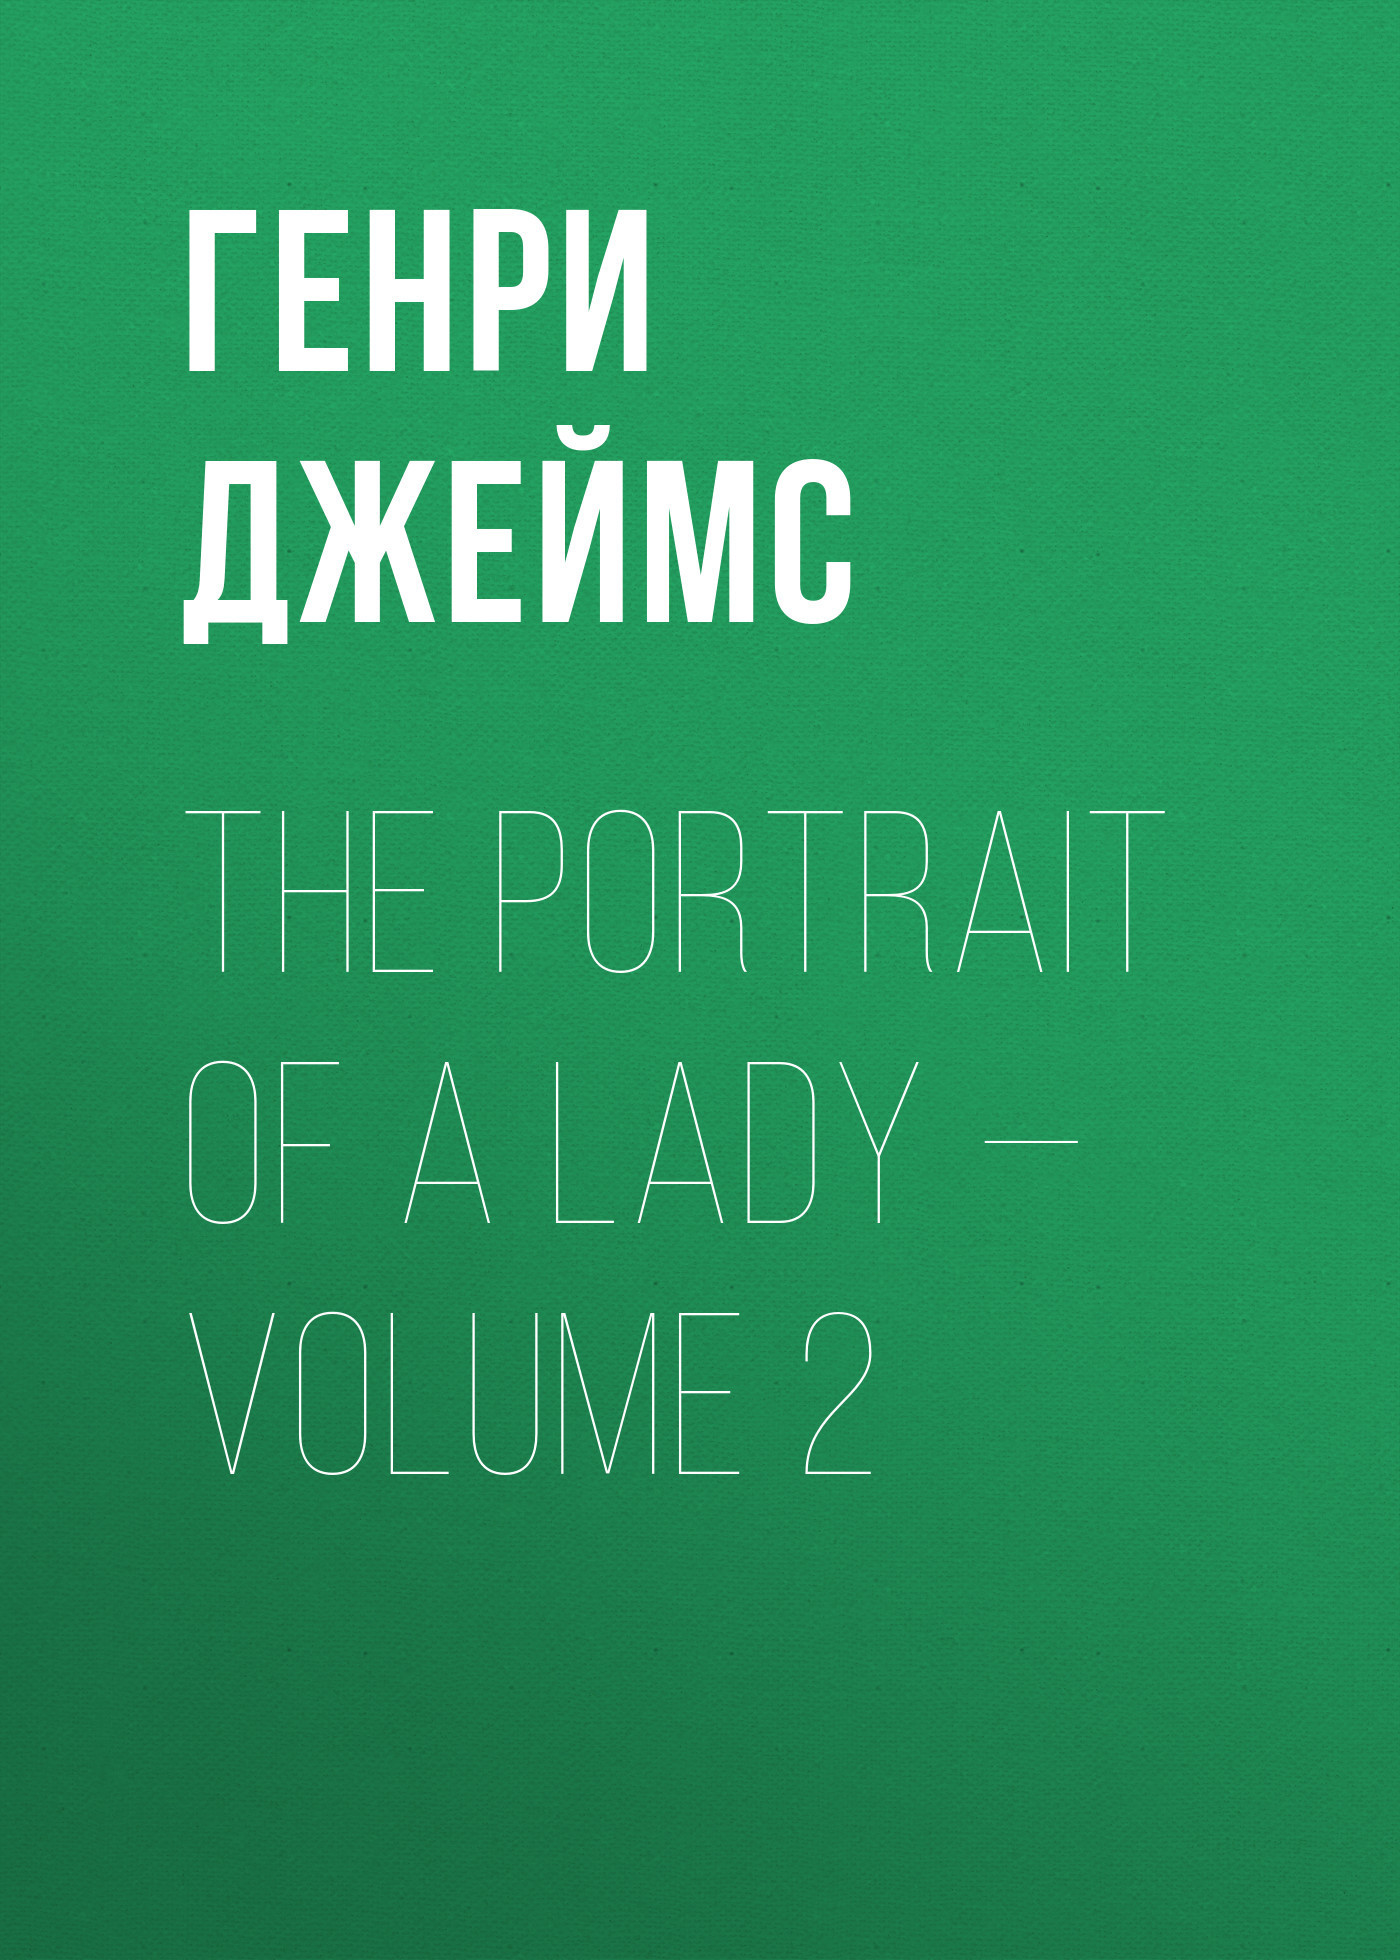 Генри Джеймс The Portrait of a Lady — Volume 2 the portrait of a lady 2e nce